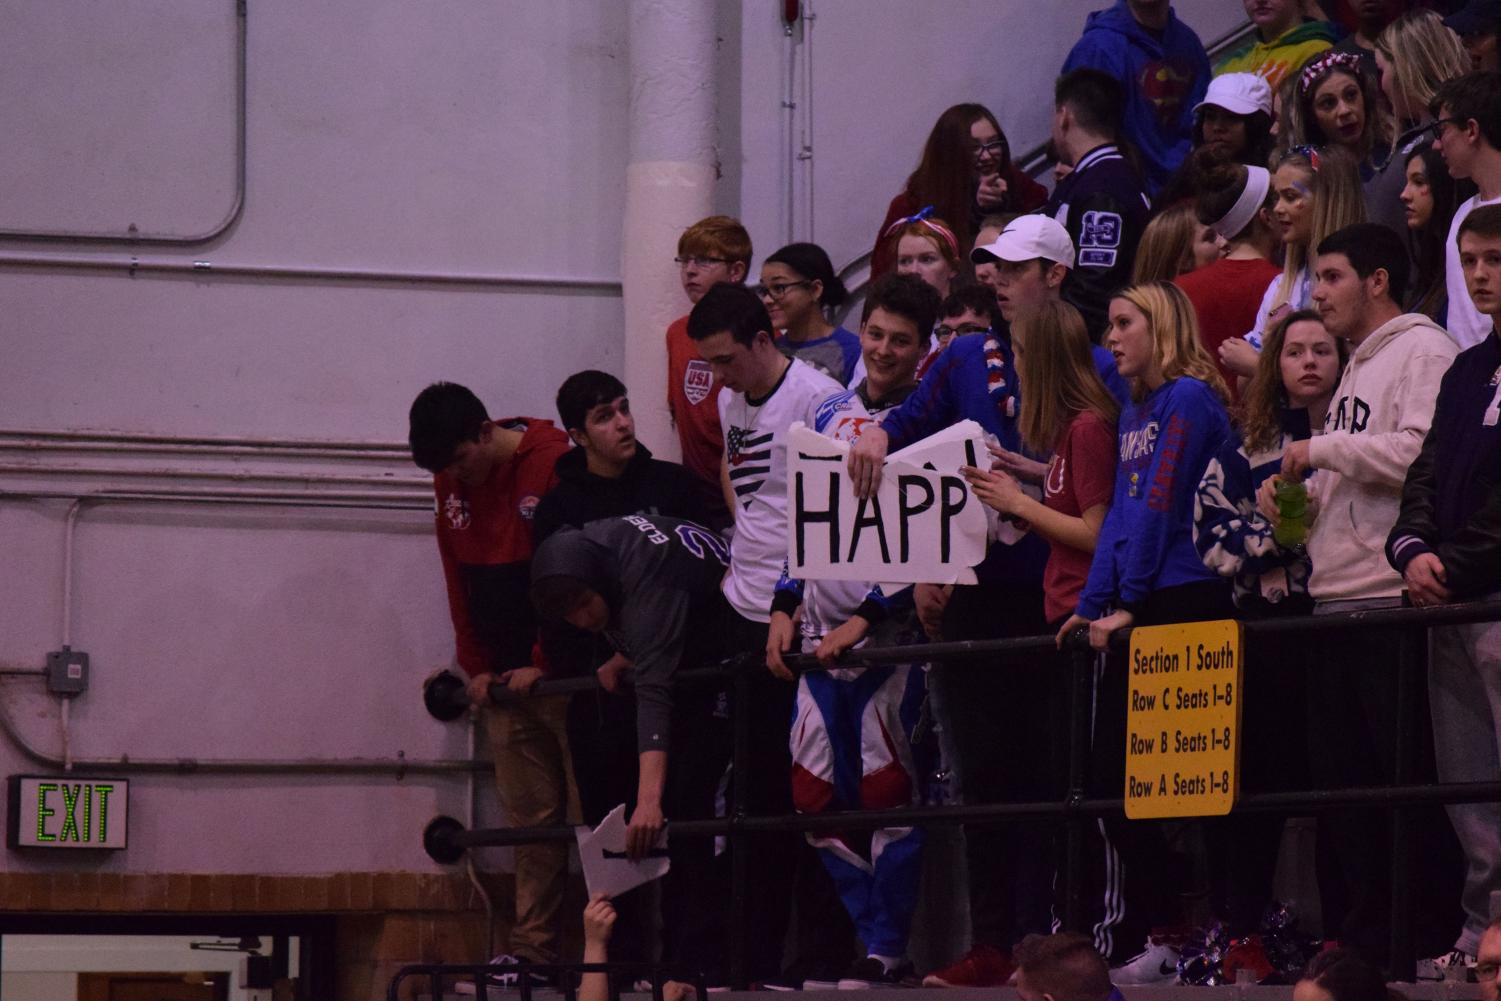 Topeka+West+student+section+after+their+sign+was+ripped.+